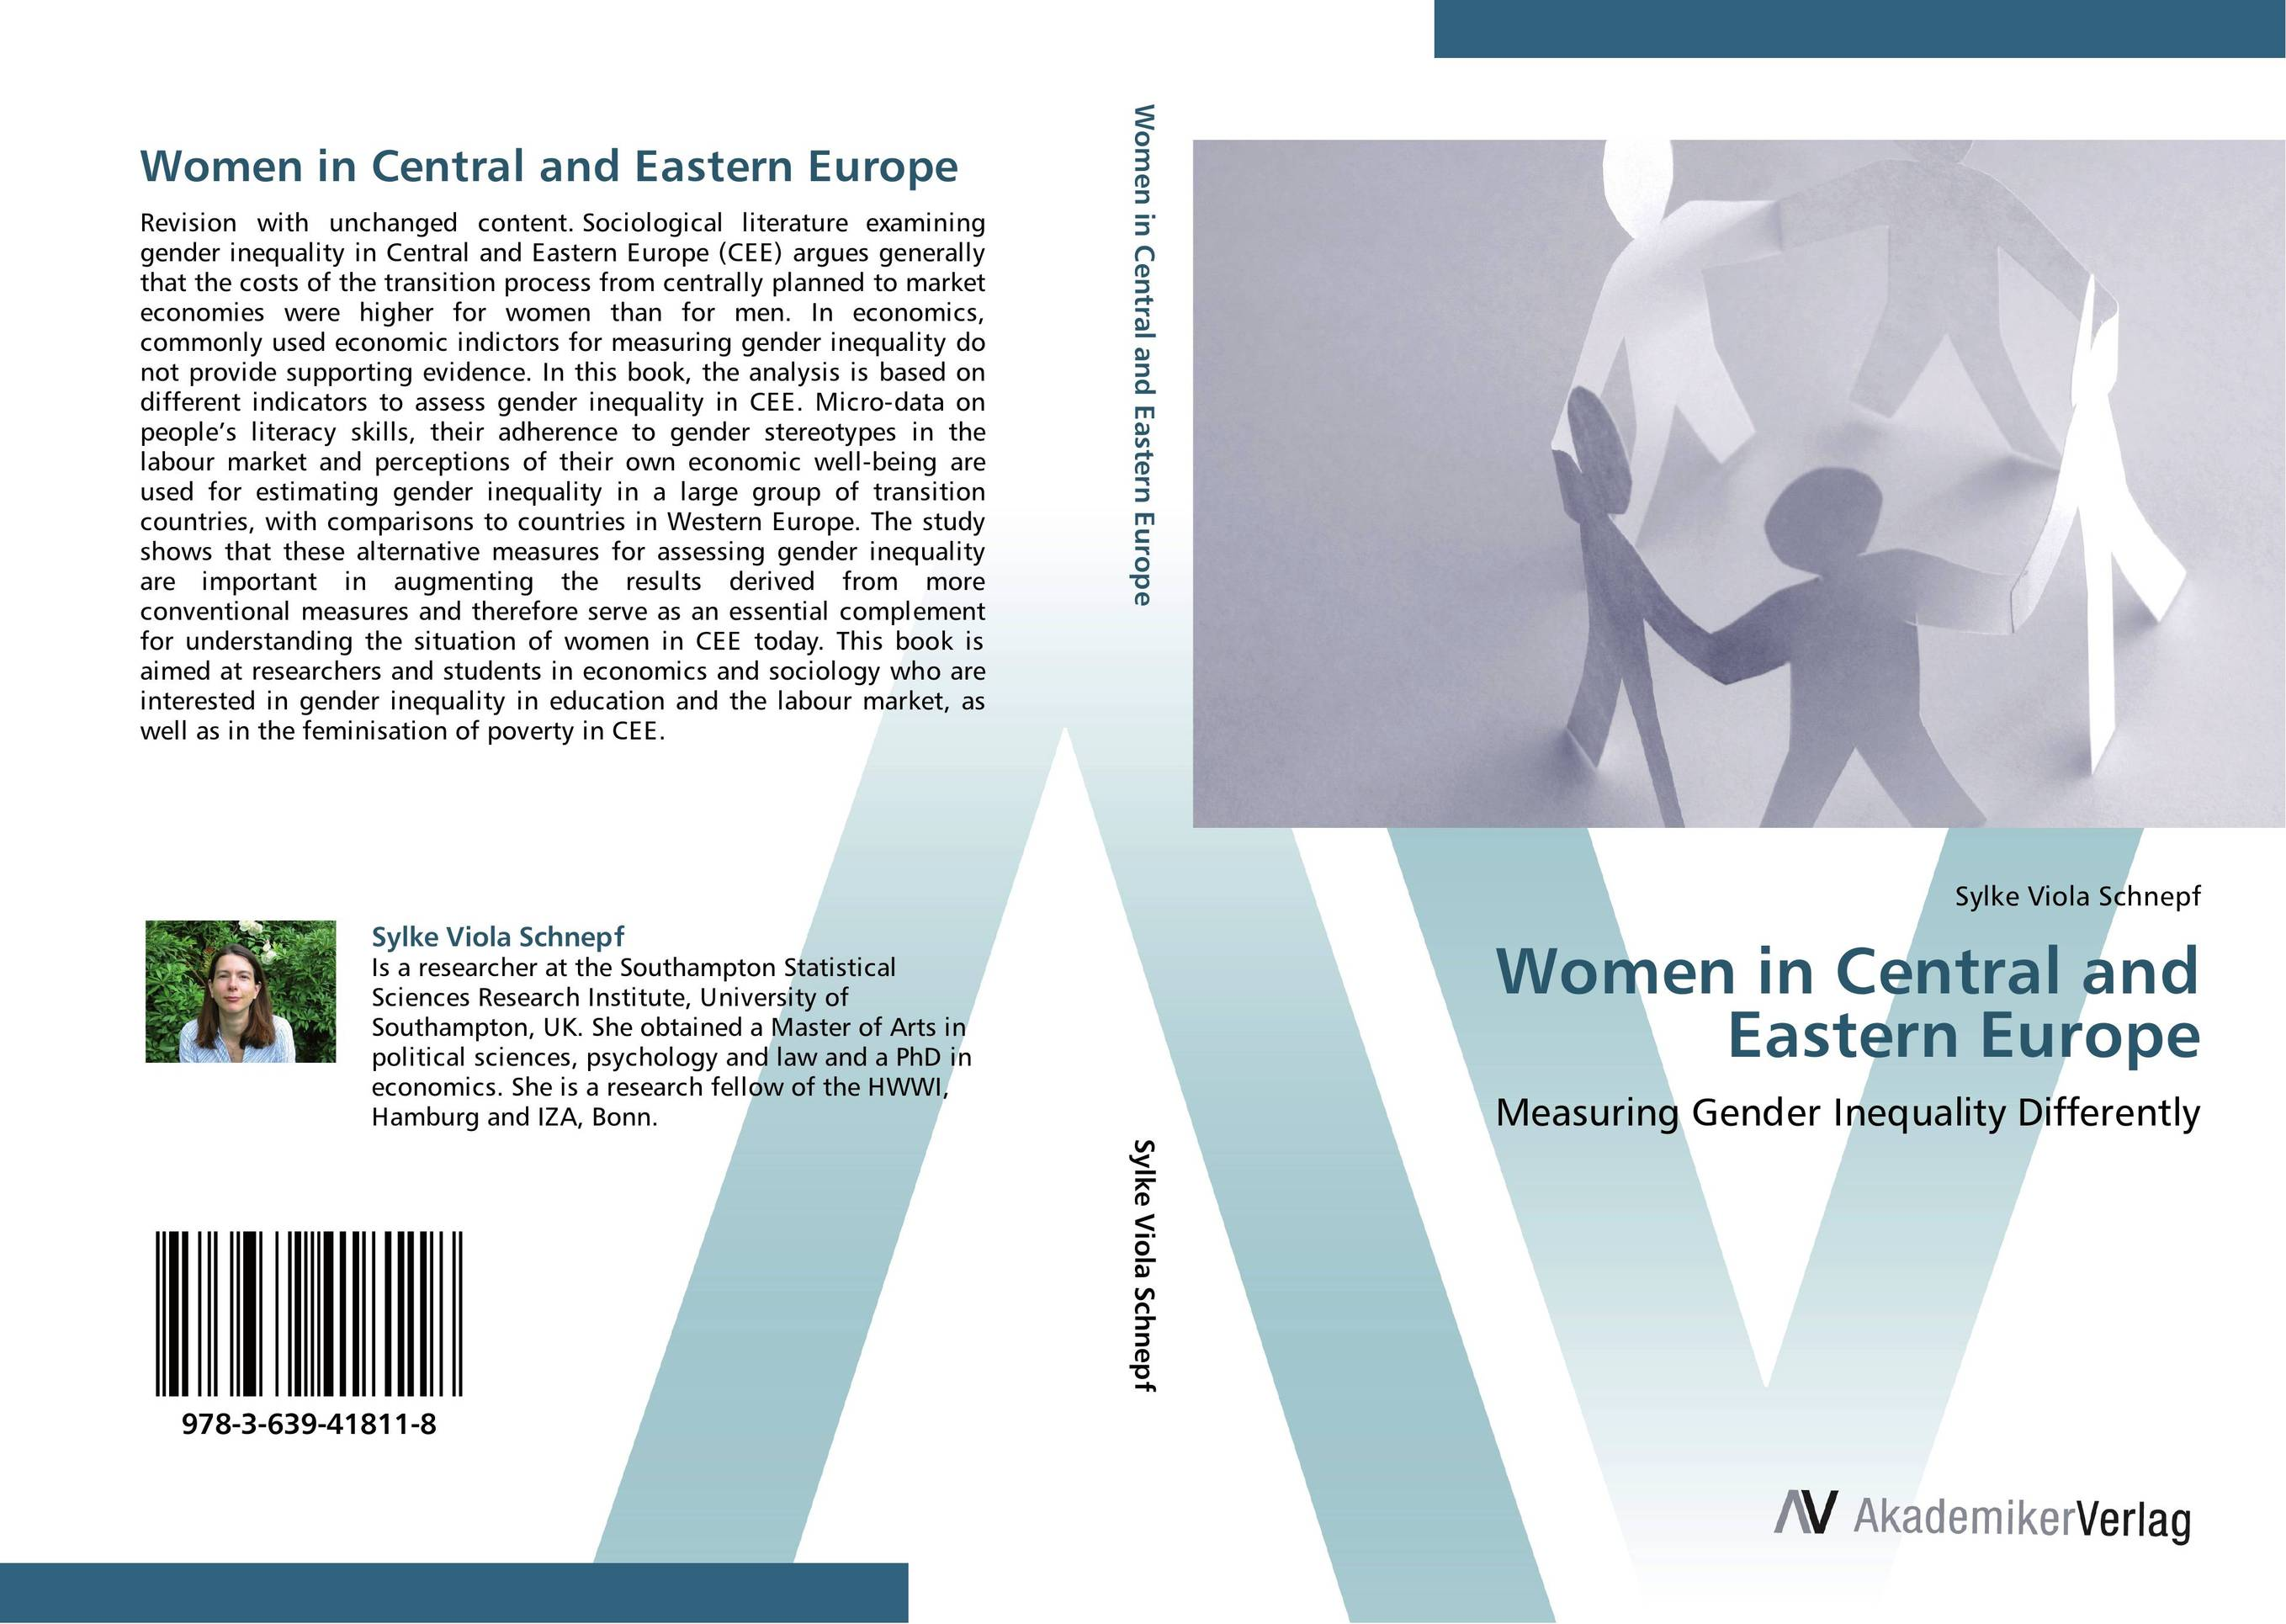 купить Women in Central and Eastern Europe недорого